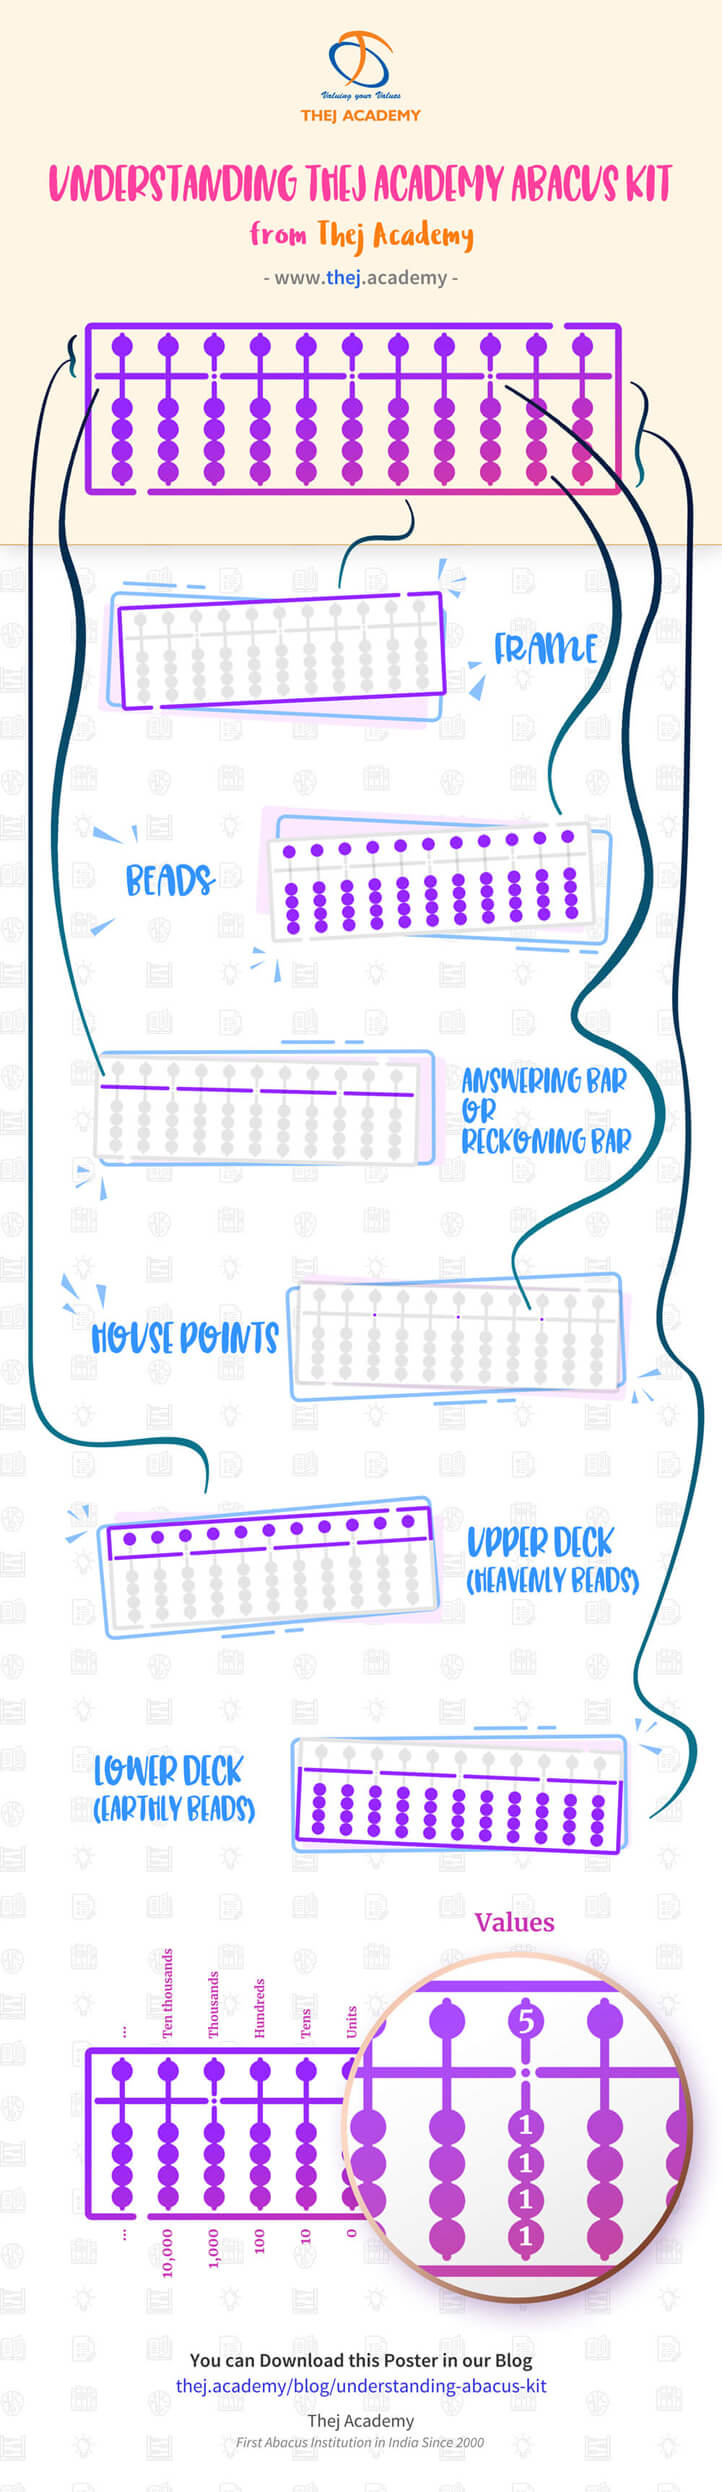 Understanding Abacus Kit Poster - Thej Academy